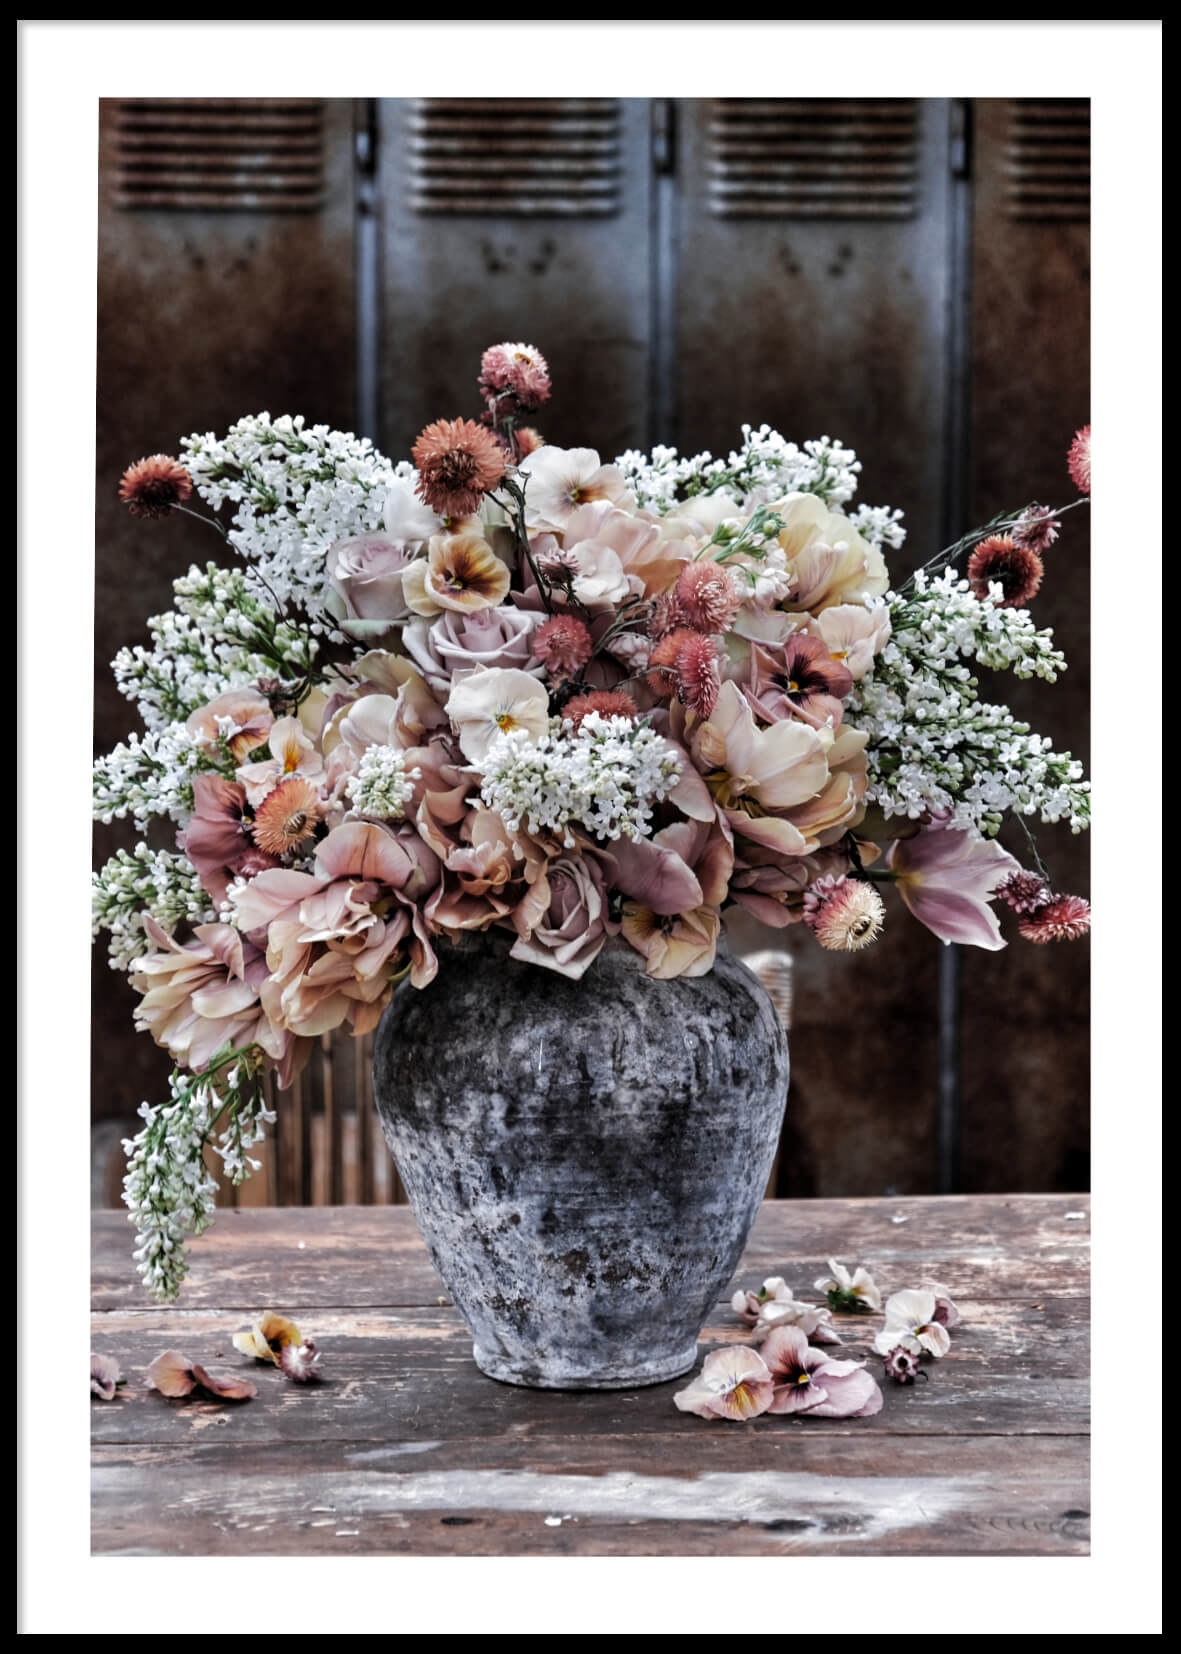 RUSTIC VASE WITH FLOWERS POSTER